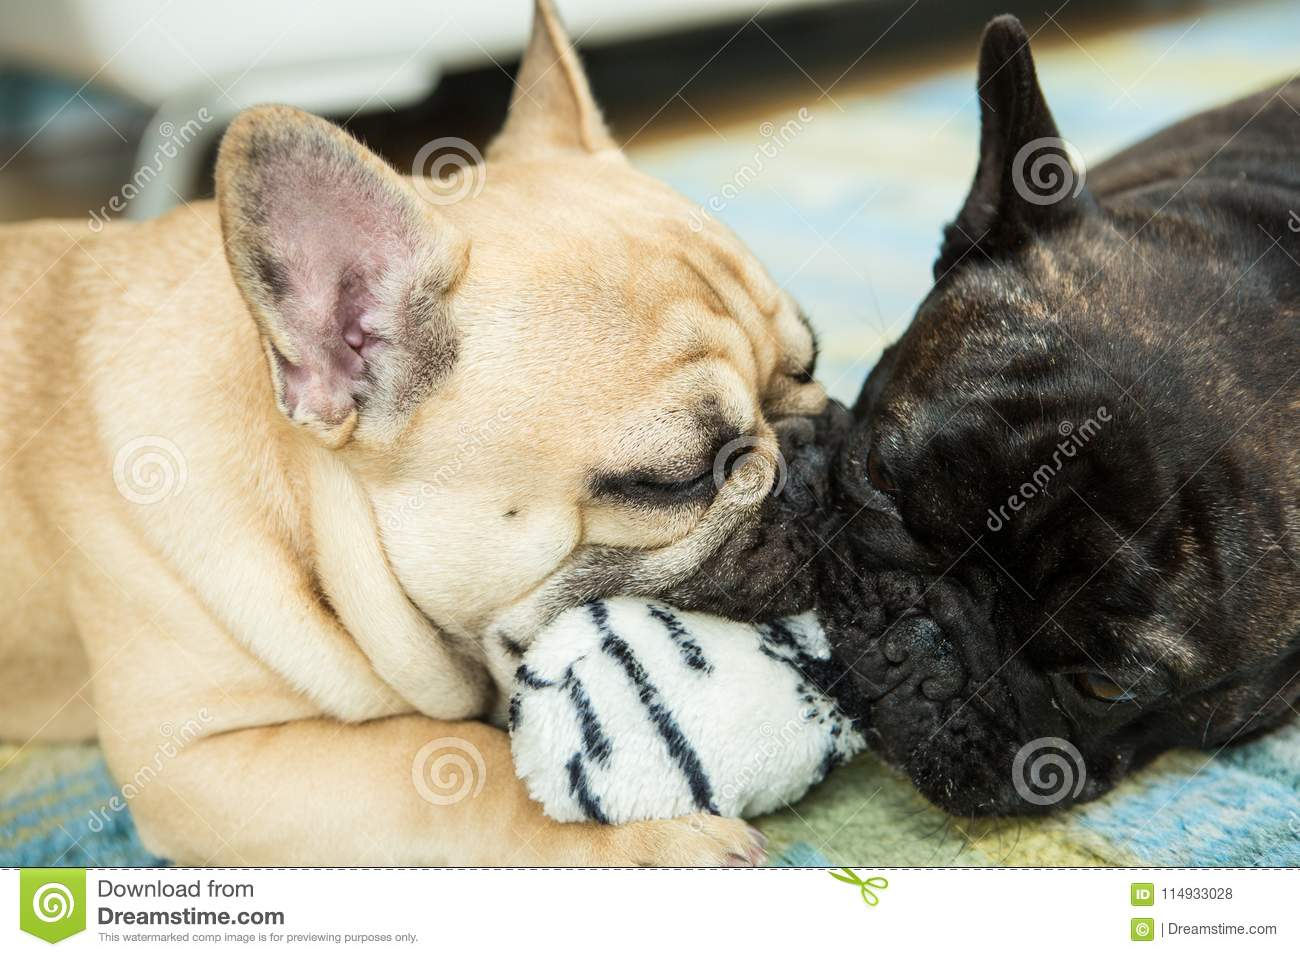 Frenchies Puppies Photos Free Royalty Free Stock Photos From Dreamstime